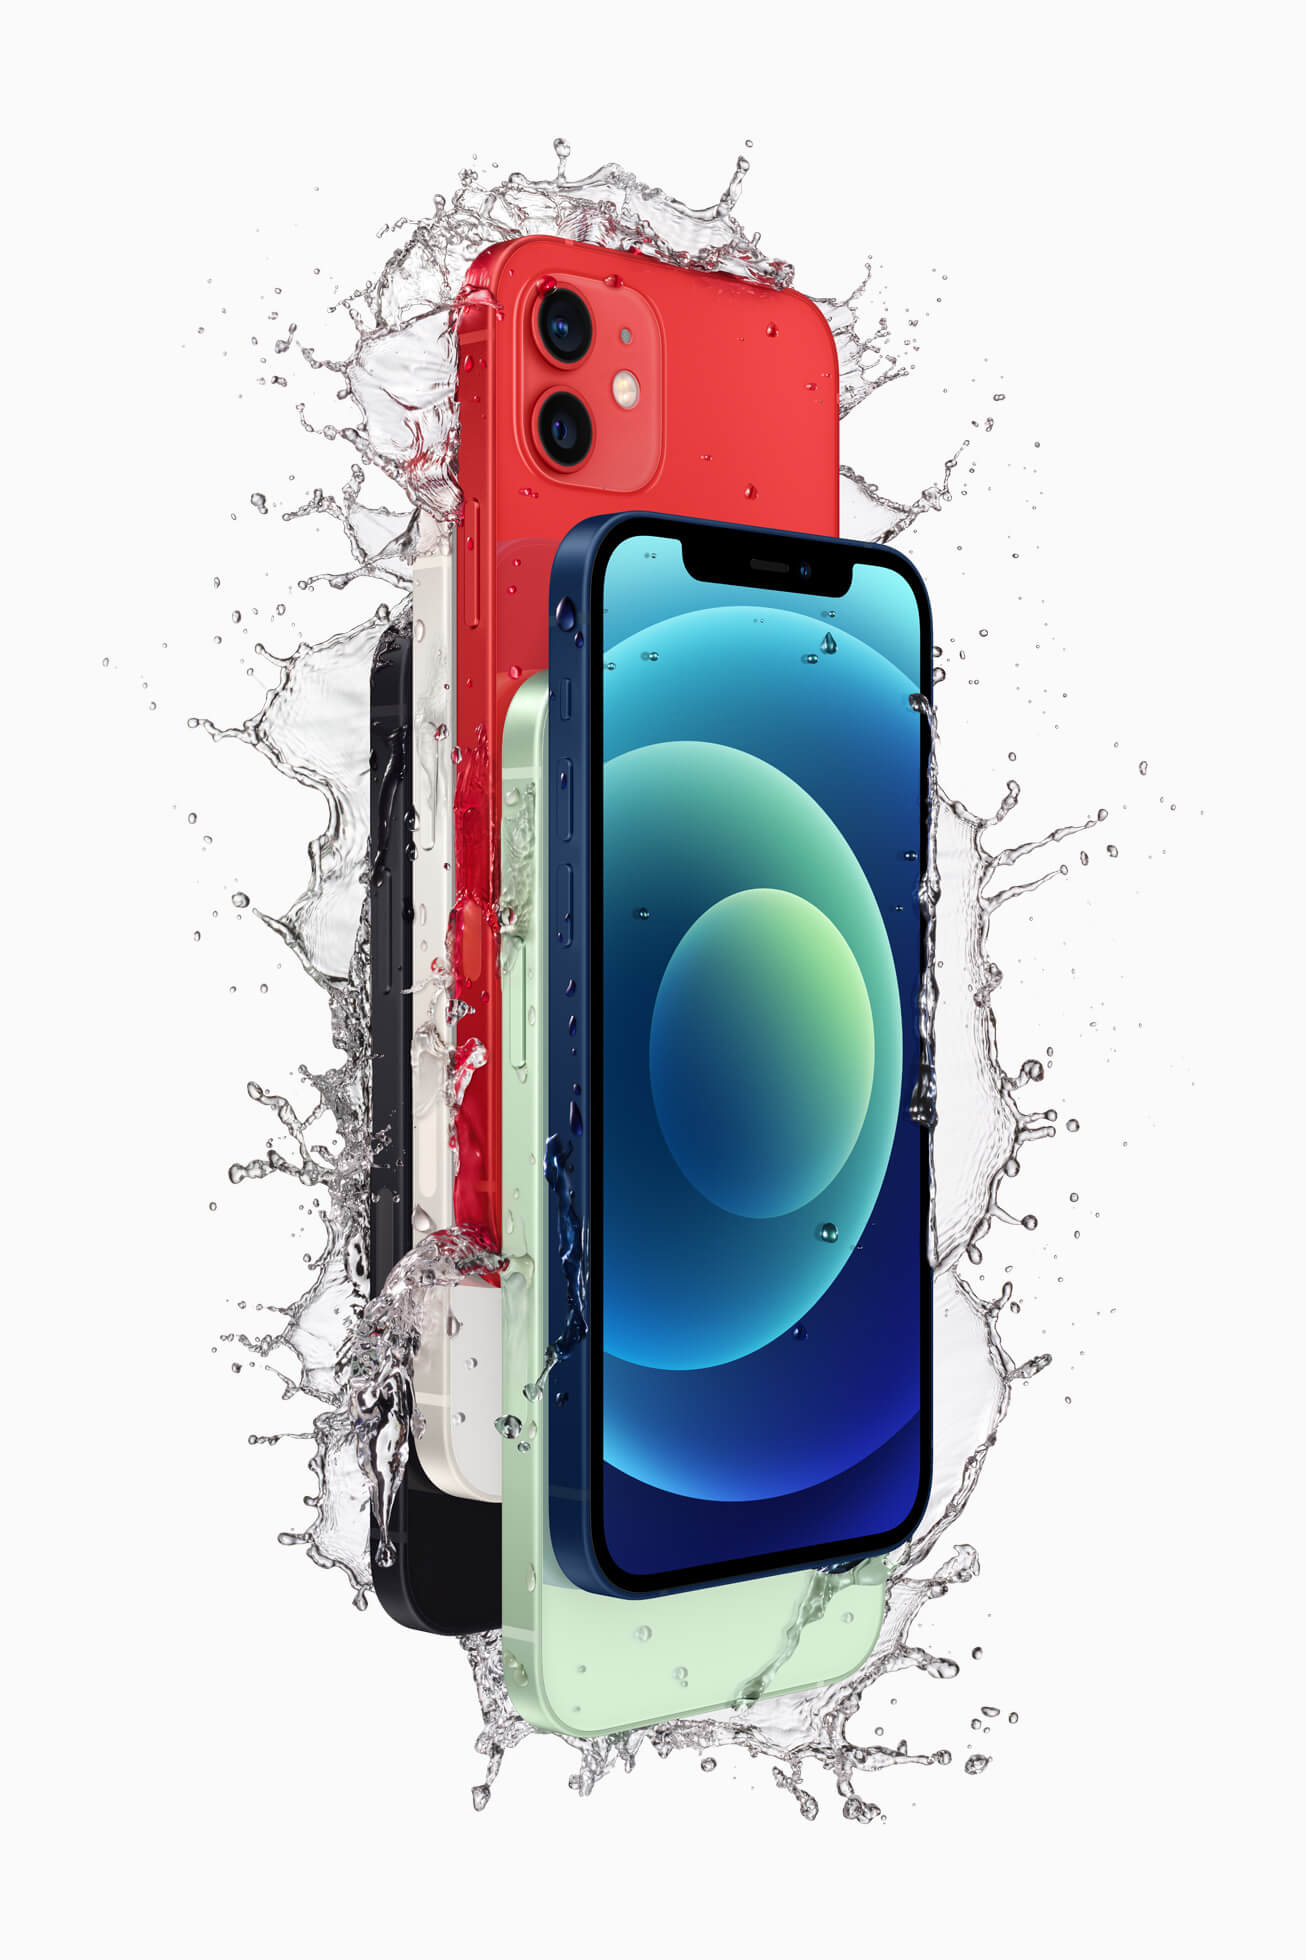 iPhone 12 Mini: water resistance